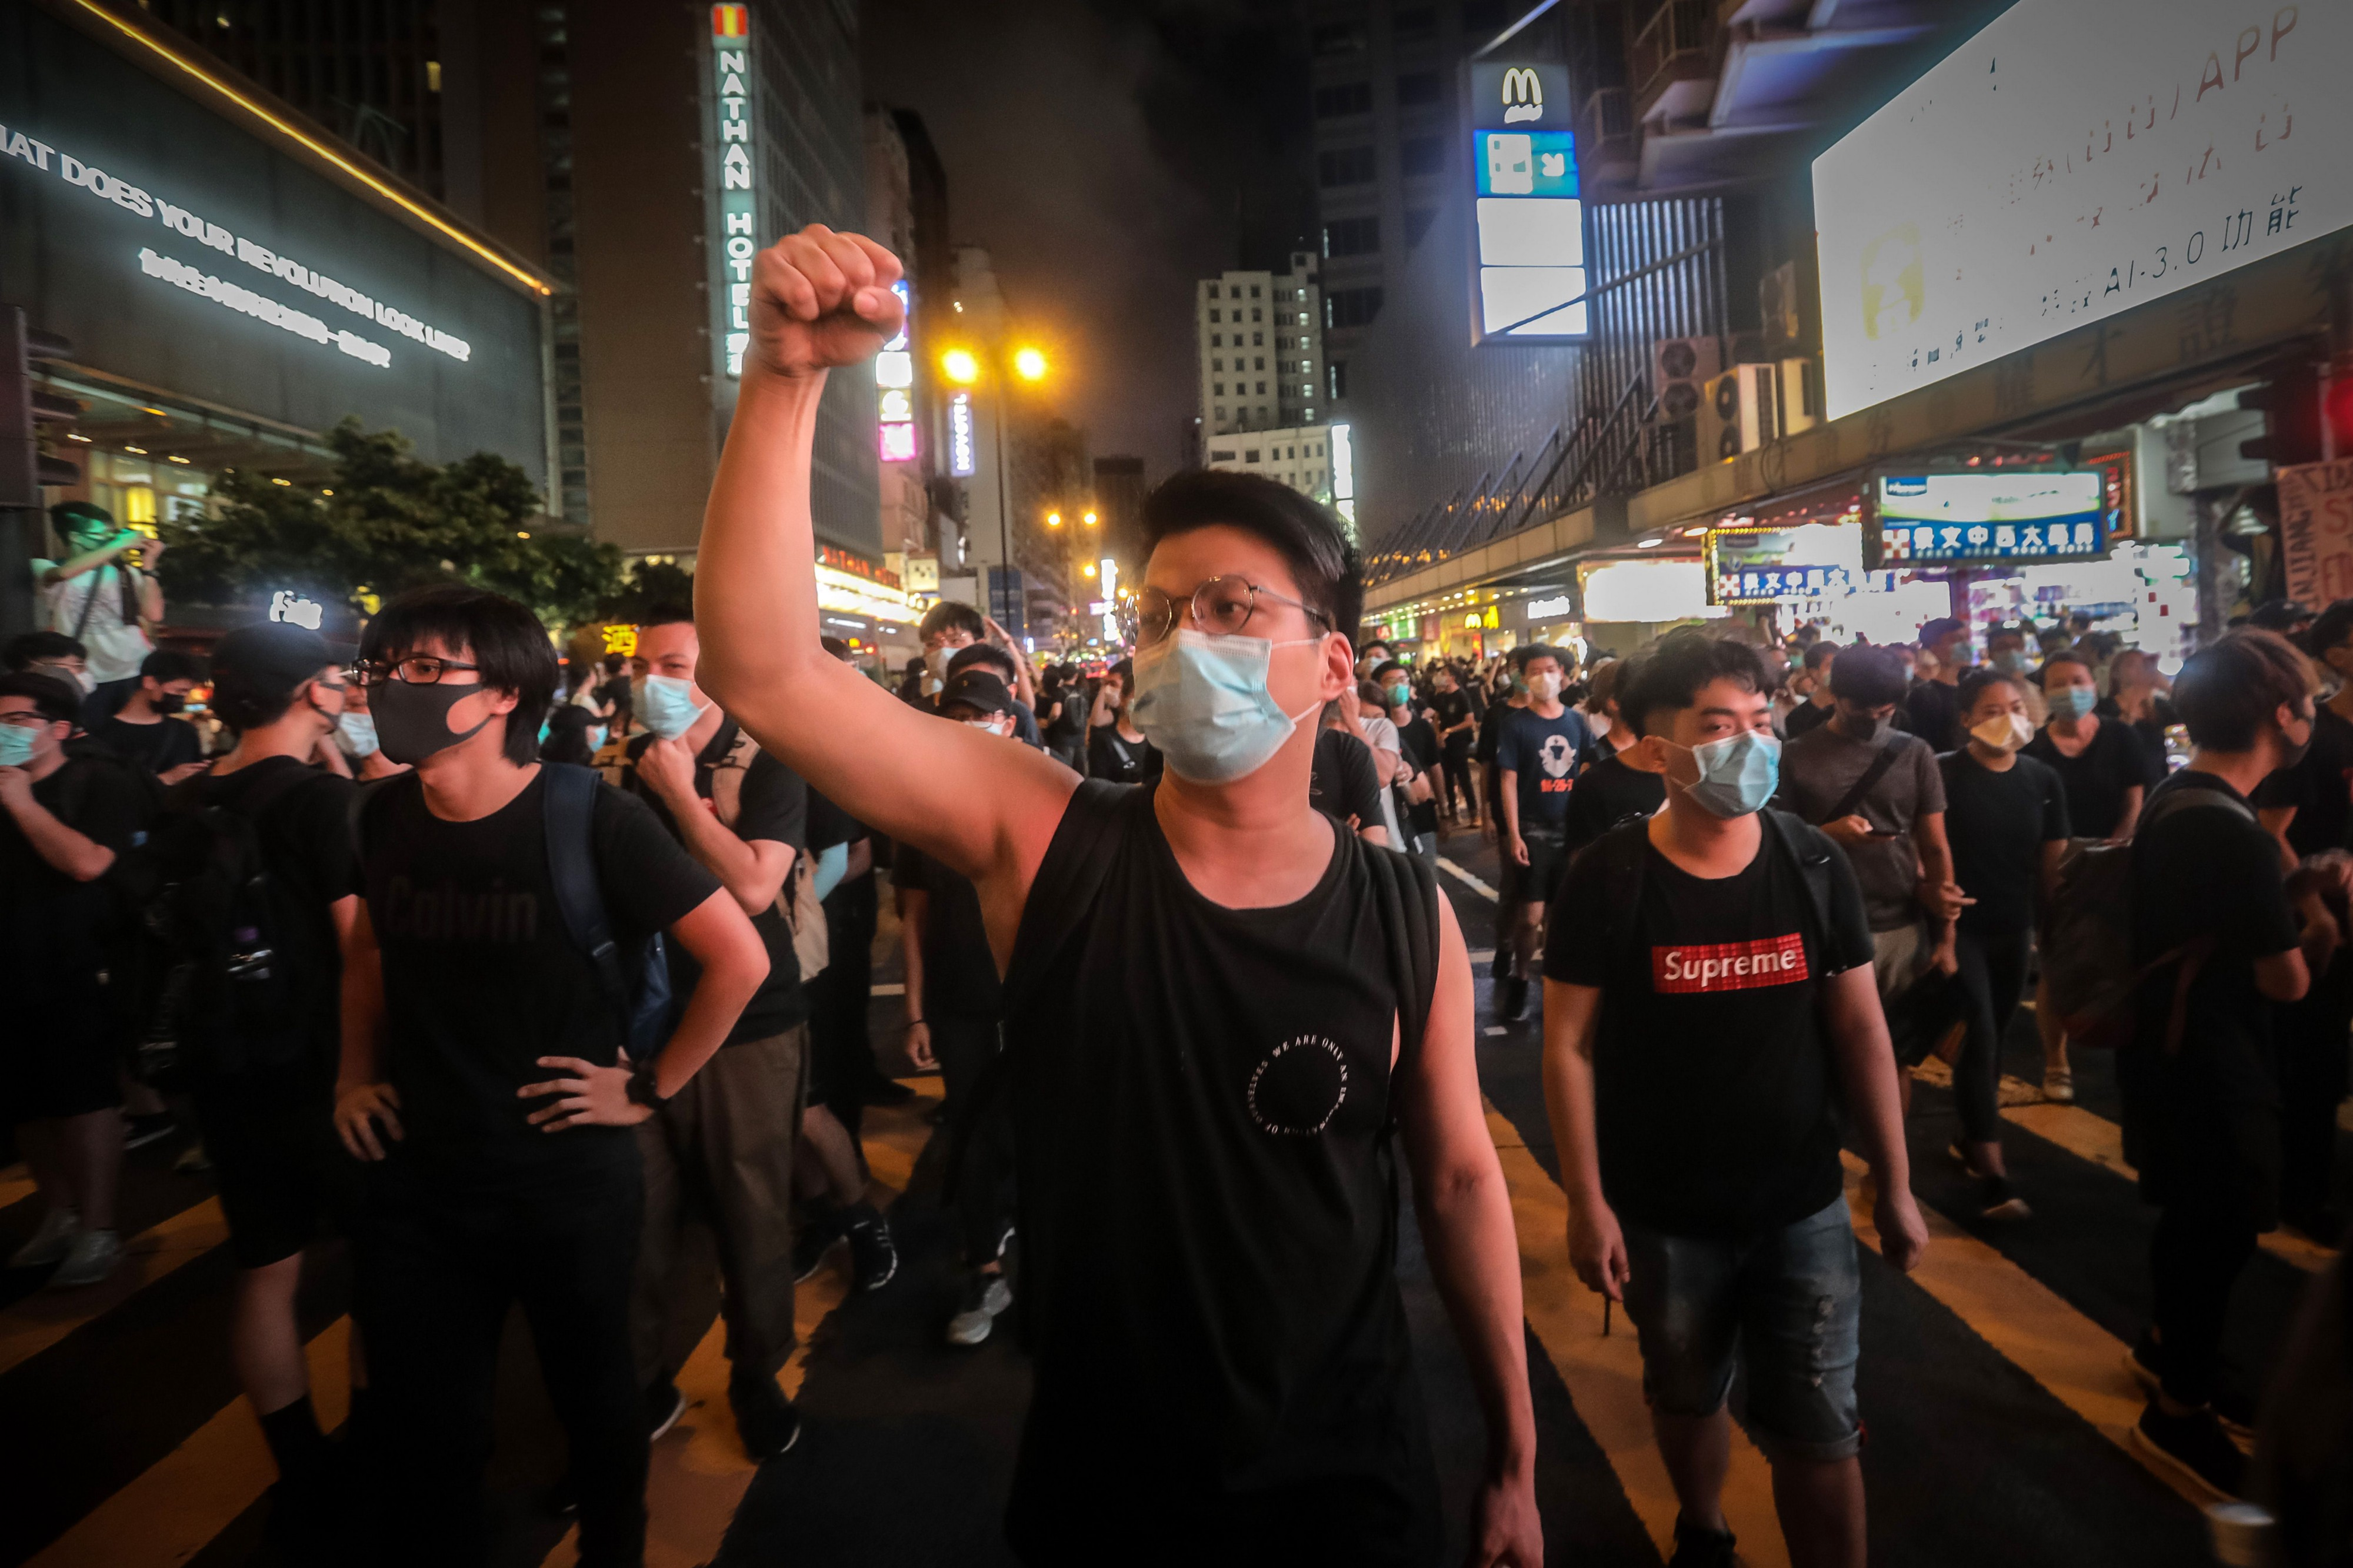 Why Youtube Keeps Demonetizing Videos Of The Hong Kong Protests